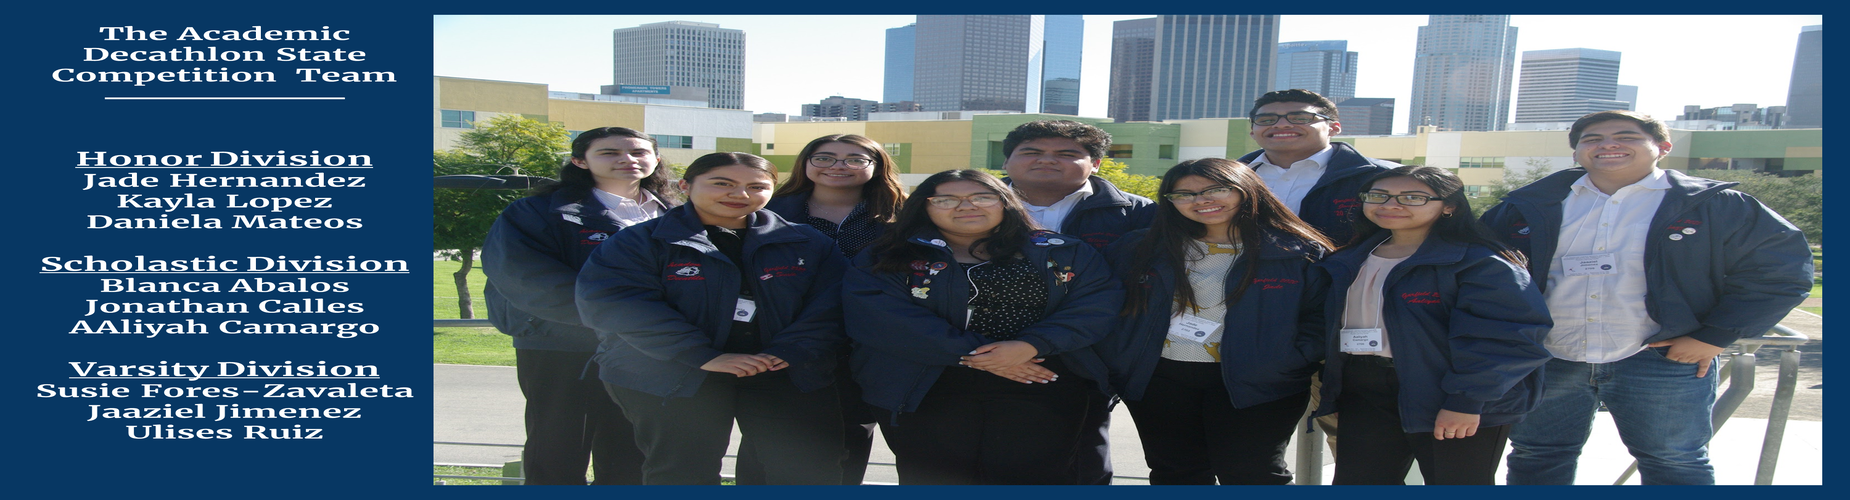 Photo of The Academic Decathlon State Team